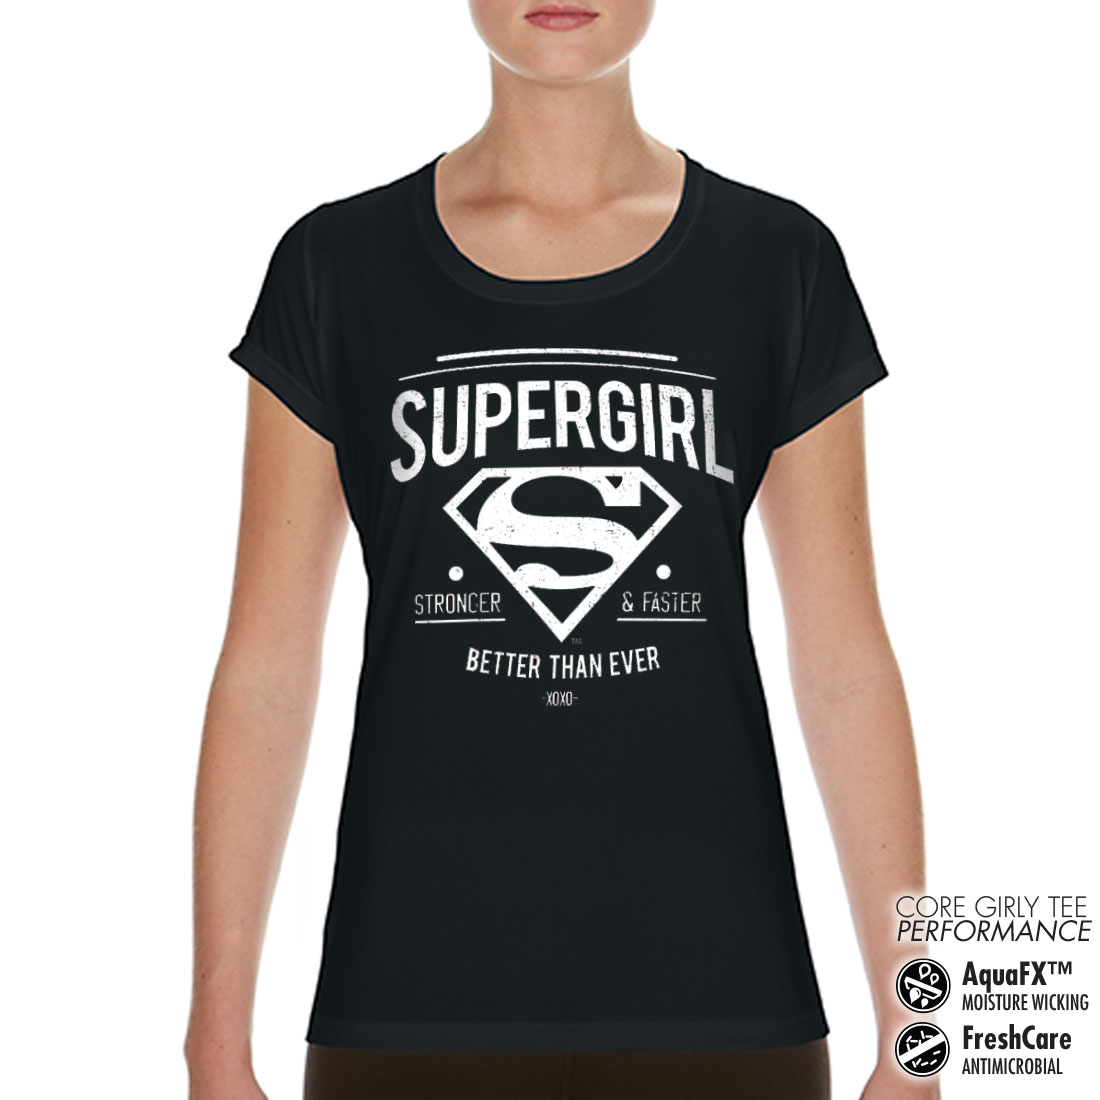 Supergirl - Strong & Faster Performance Girly Tee